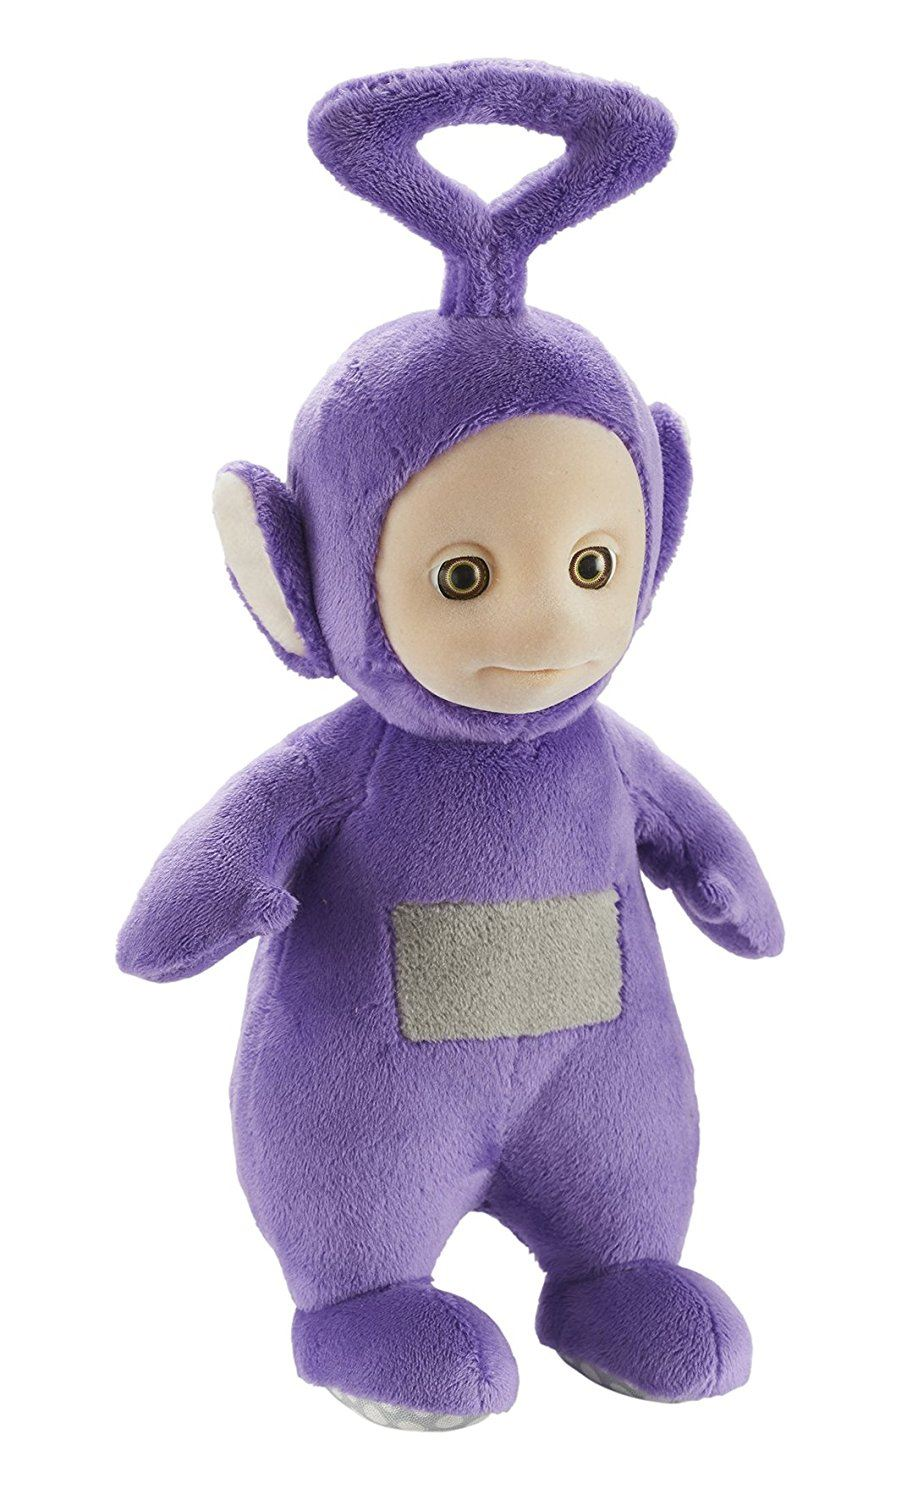 Teletubbies 26cm Talking Tinky Winky Soft Plush Toy Brand New